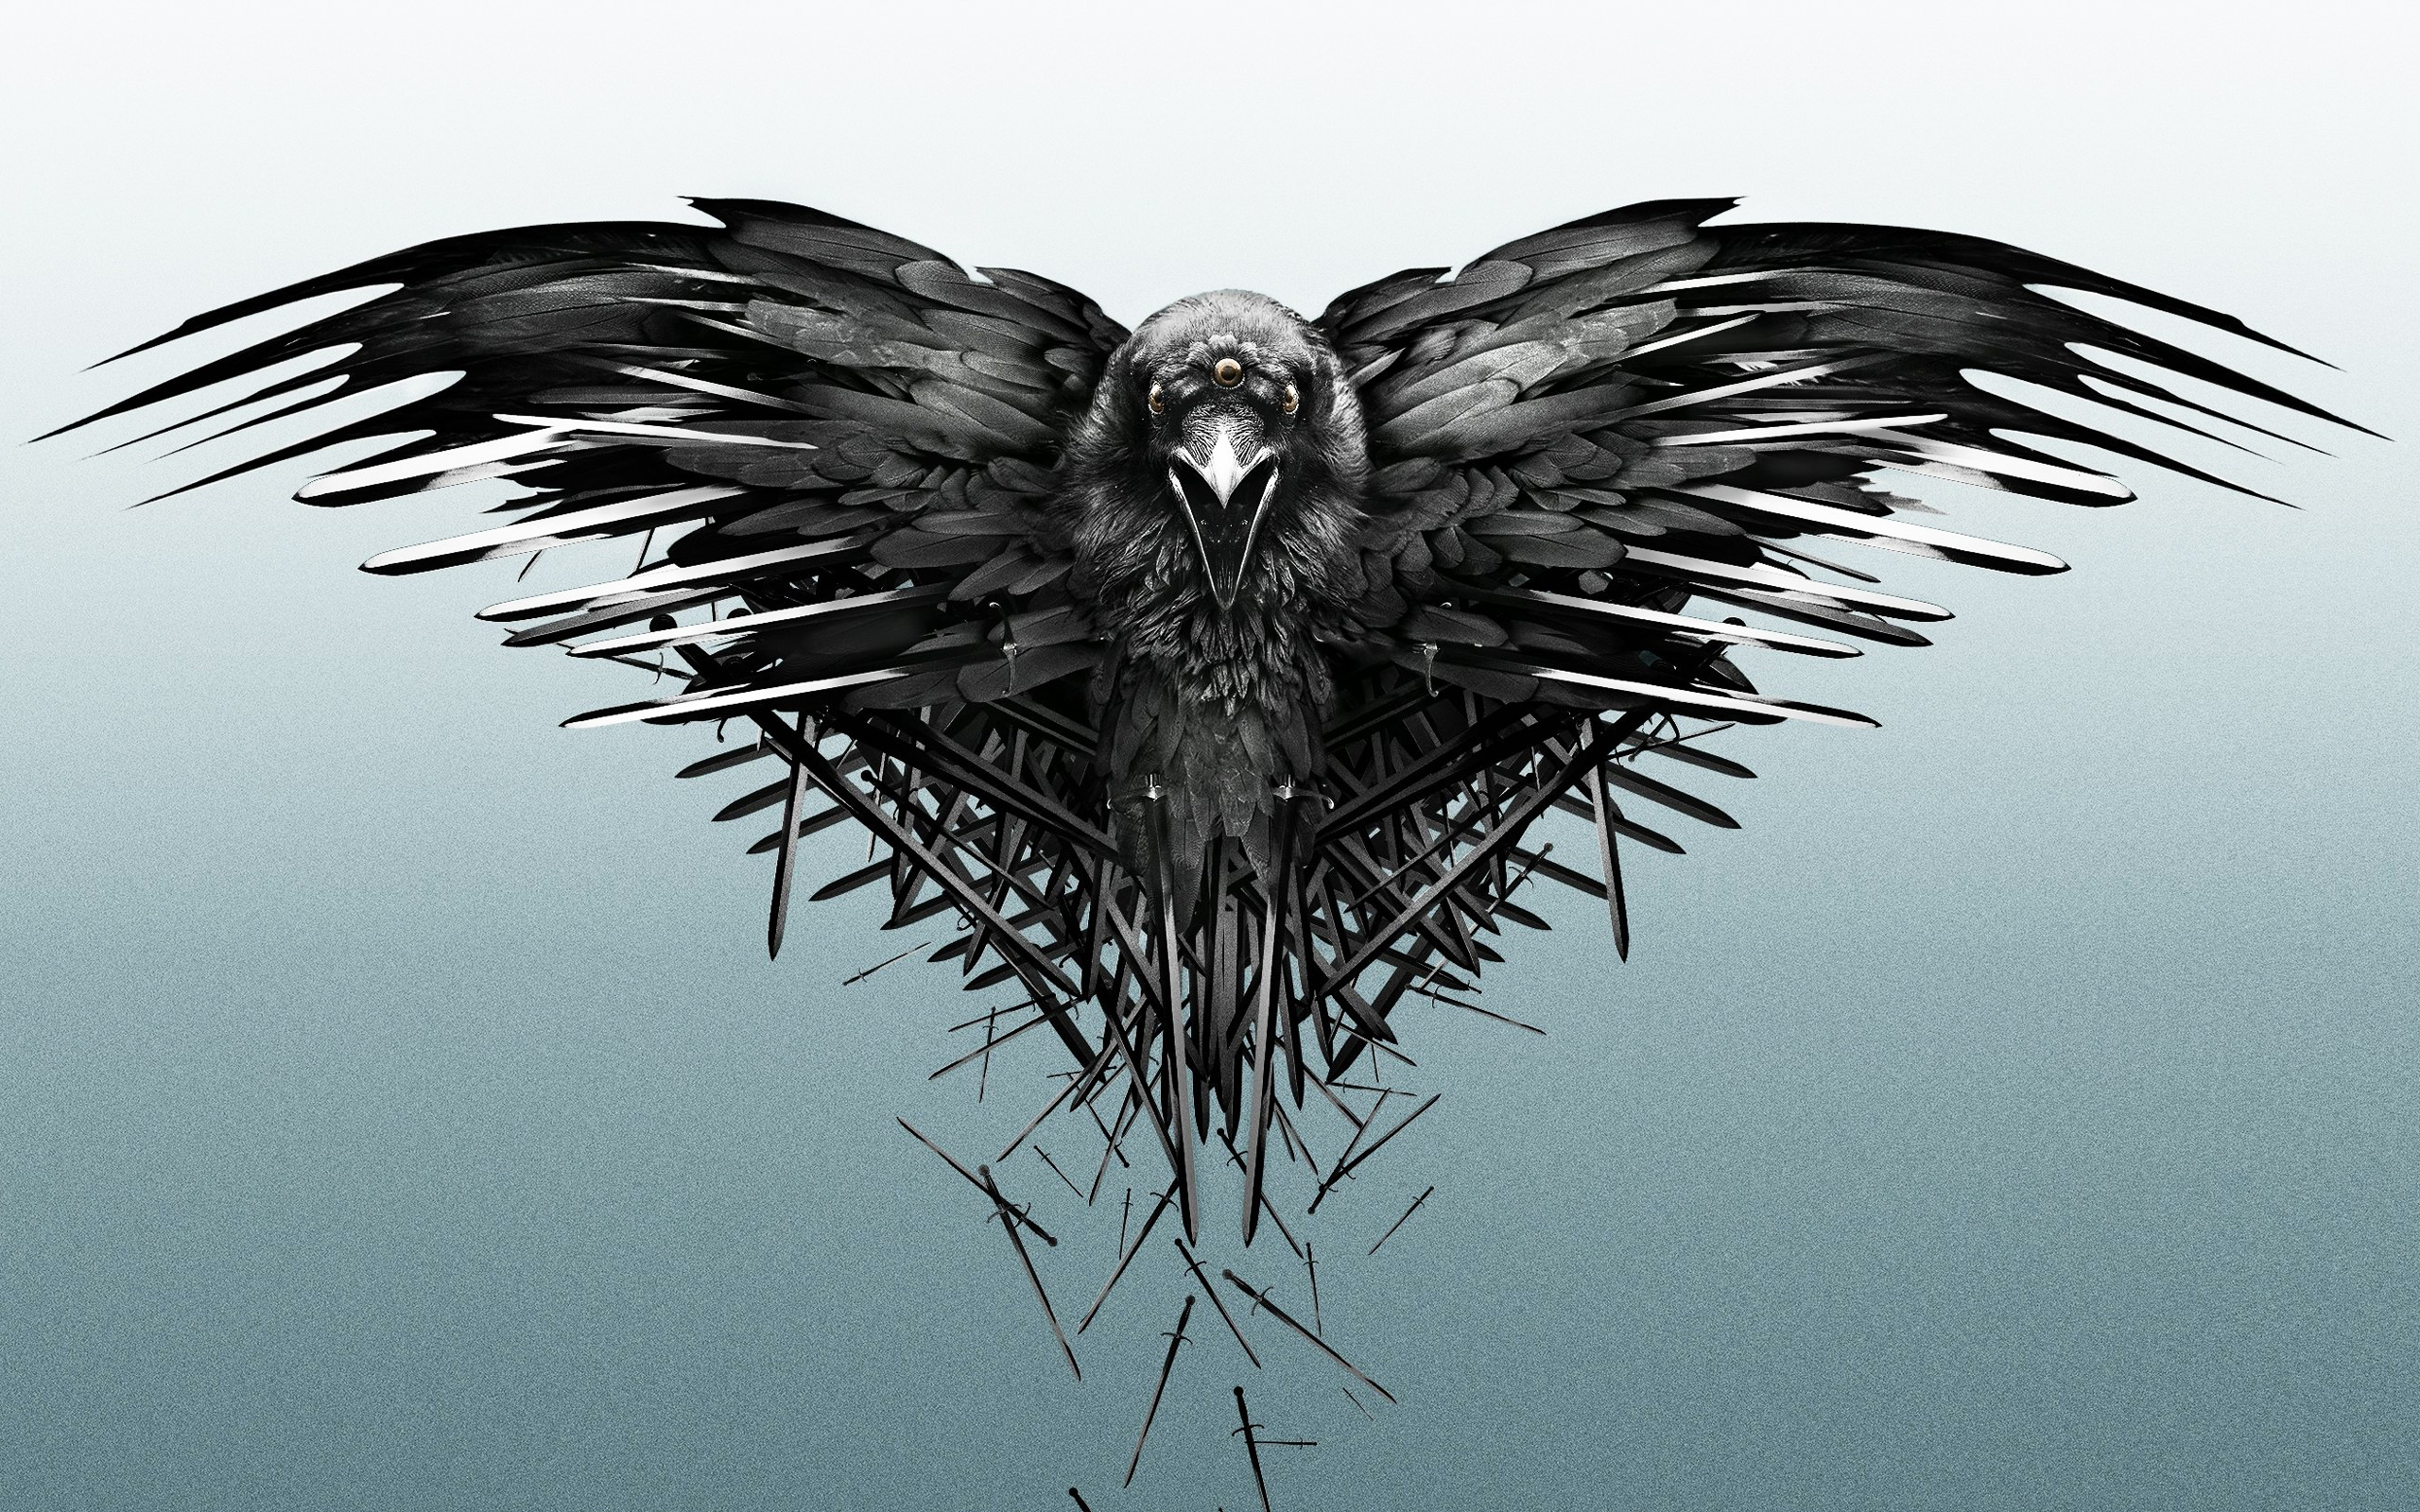 Game of Thrones Wallpapers 2560x1600